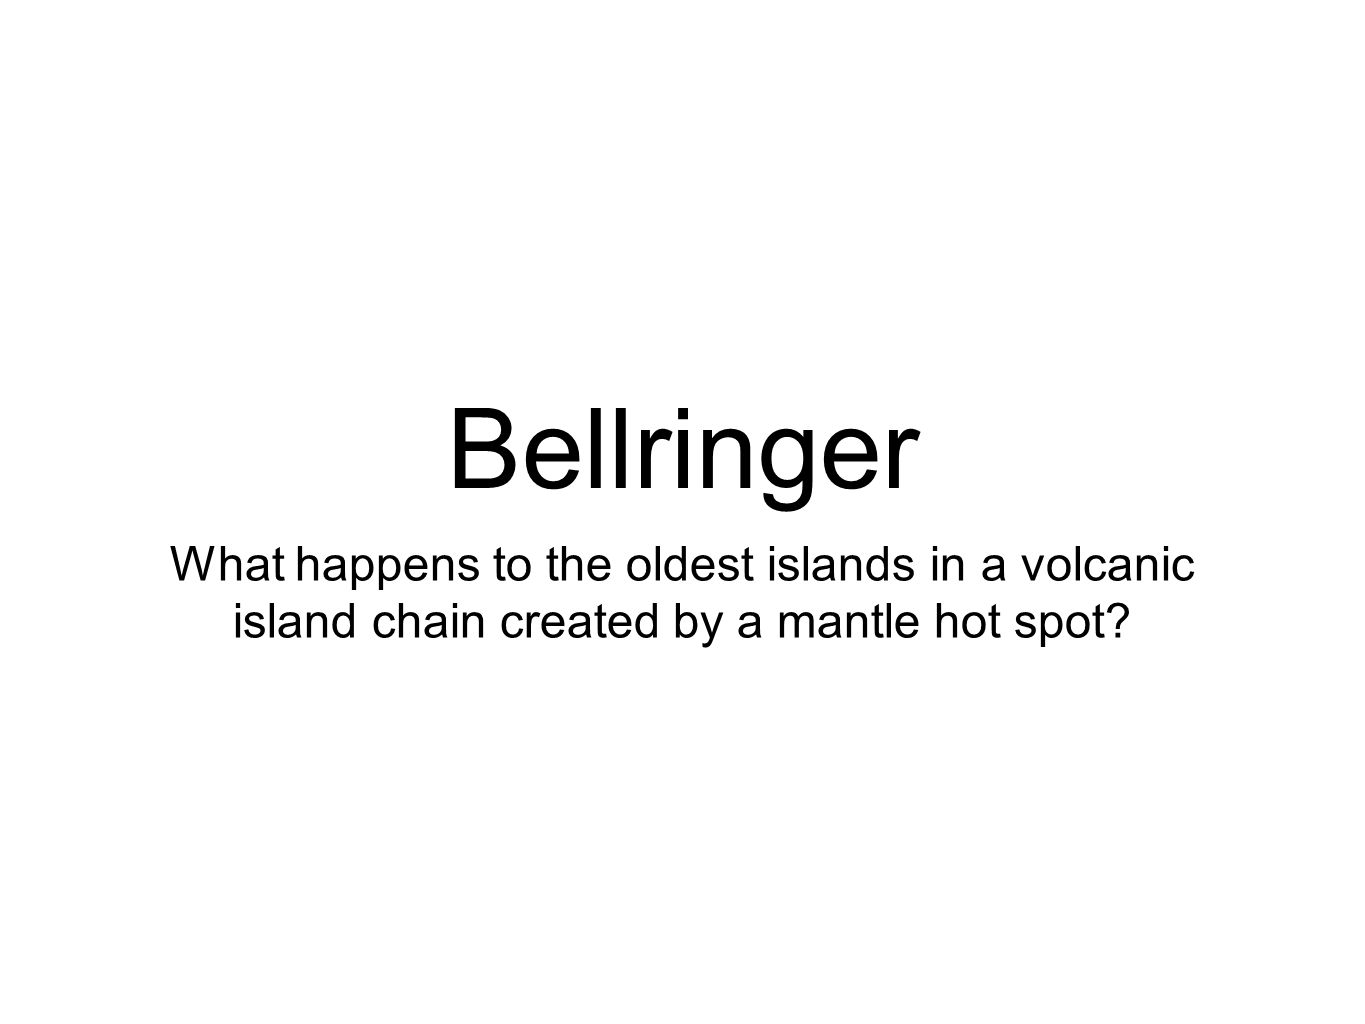 Bellringer What happens to the oldest islands in a volcanic island chain created by a mantle hot spot